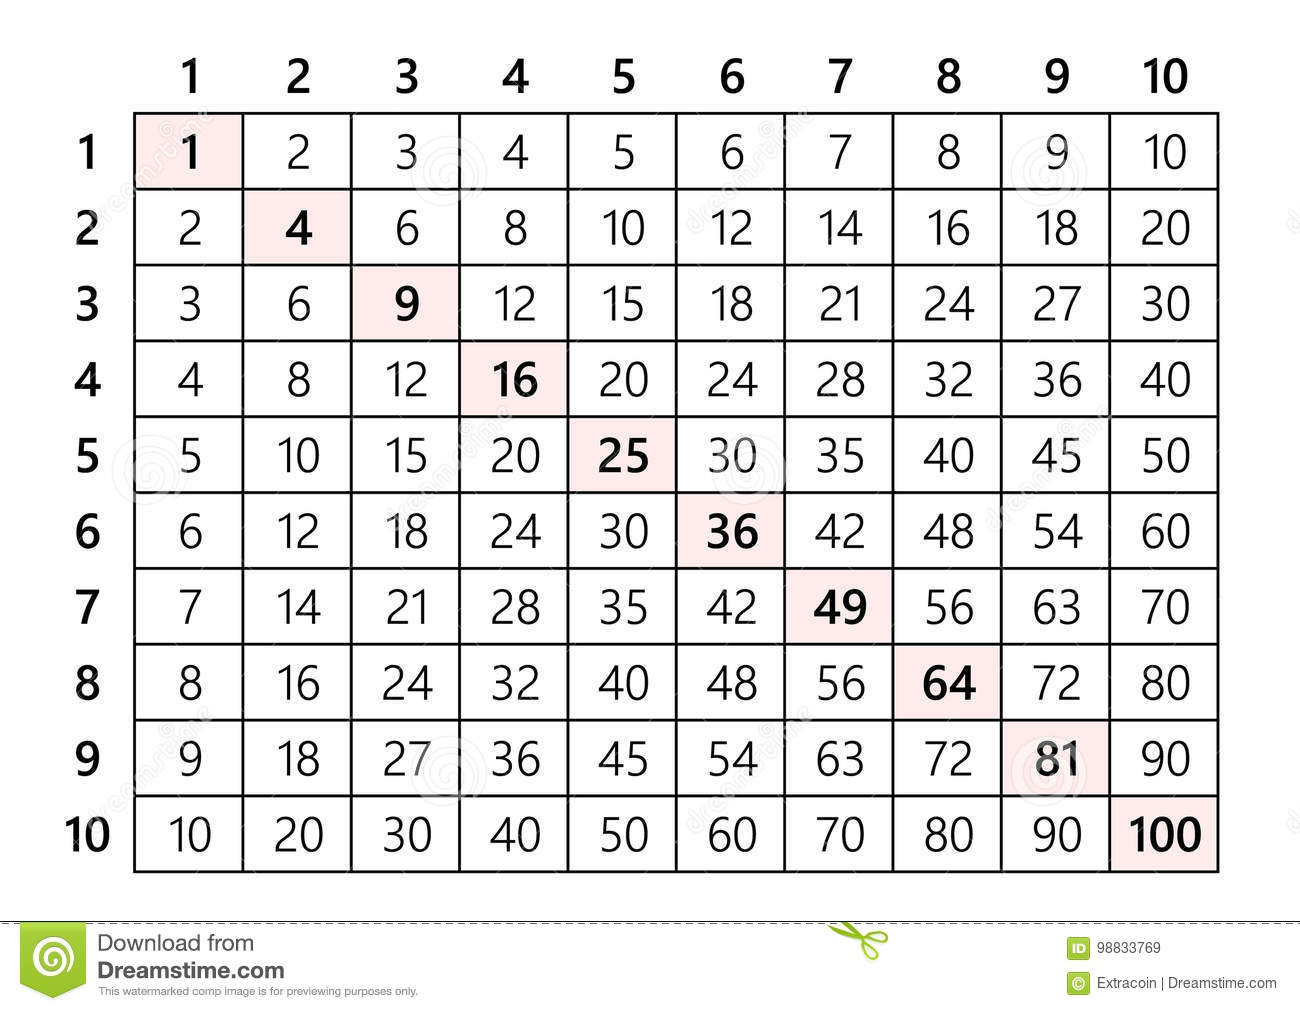 Multiplication table 10x10 gallery periodic table images multiplication table 10x10 stock vector image 98833769 illustration multiplication table gamestrikefo gallery gamestrikefo Image collections